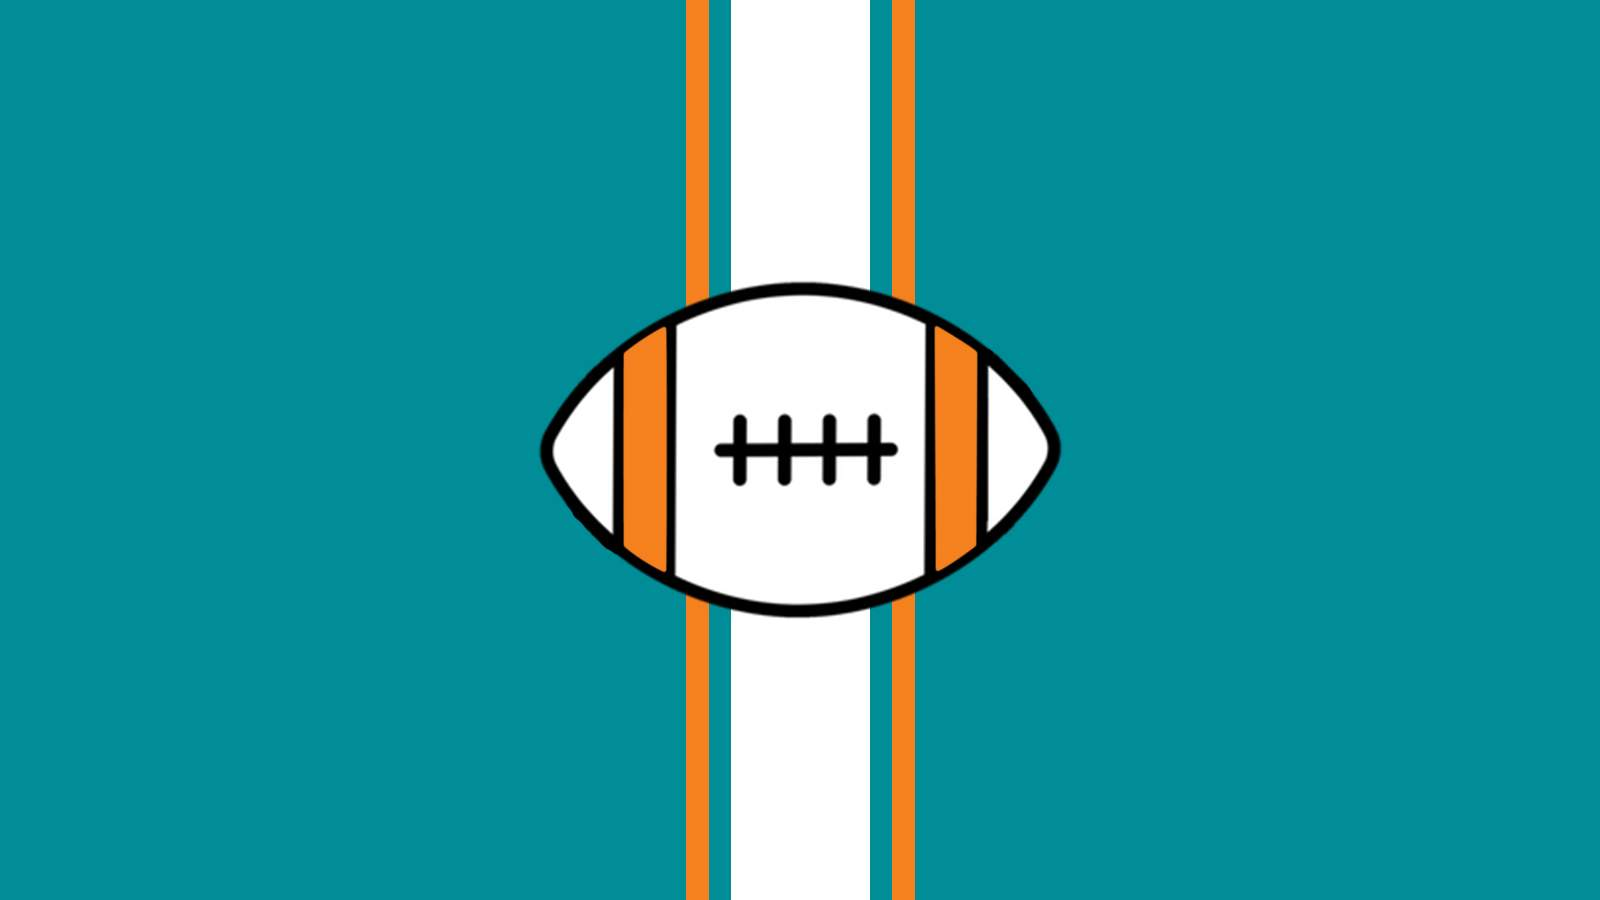 Los Angeles Rams at Miami Dolphins (Reduced Capacity, Social Distancing)